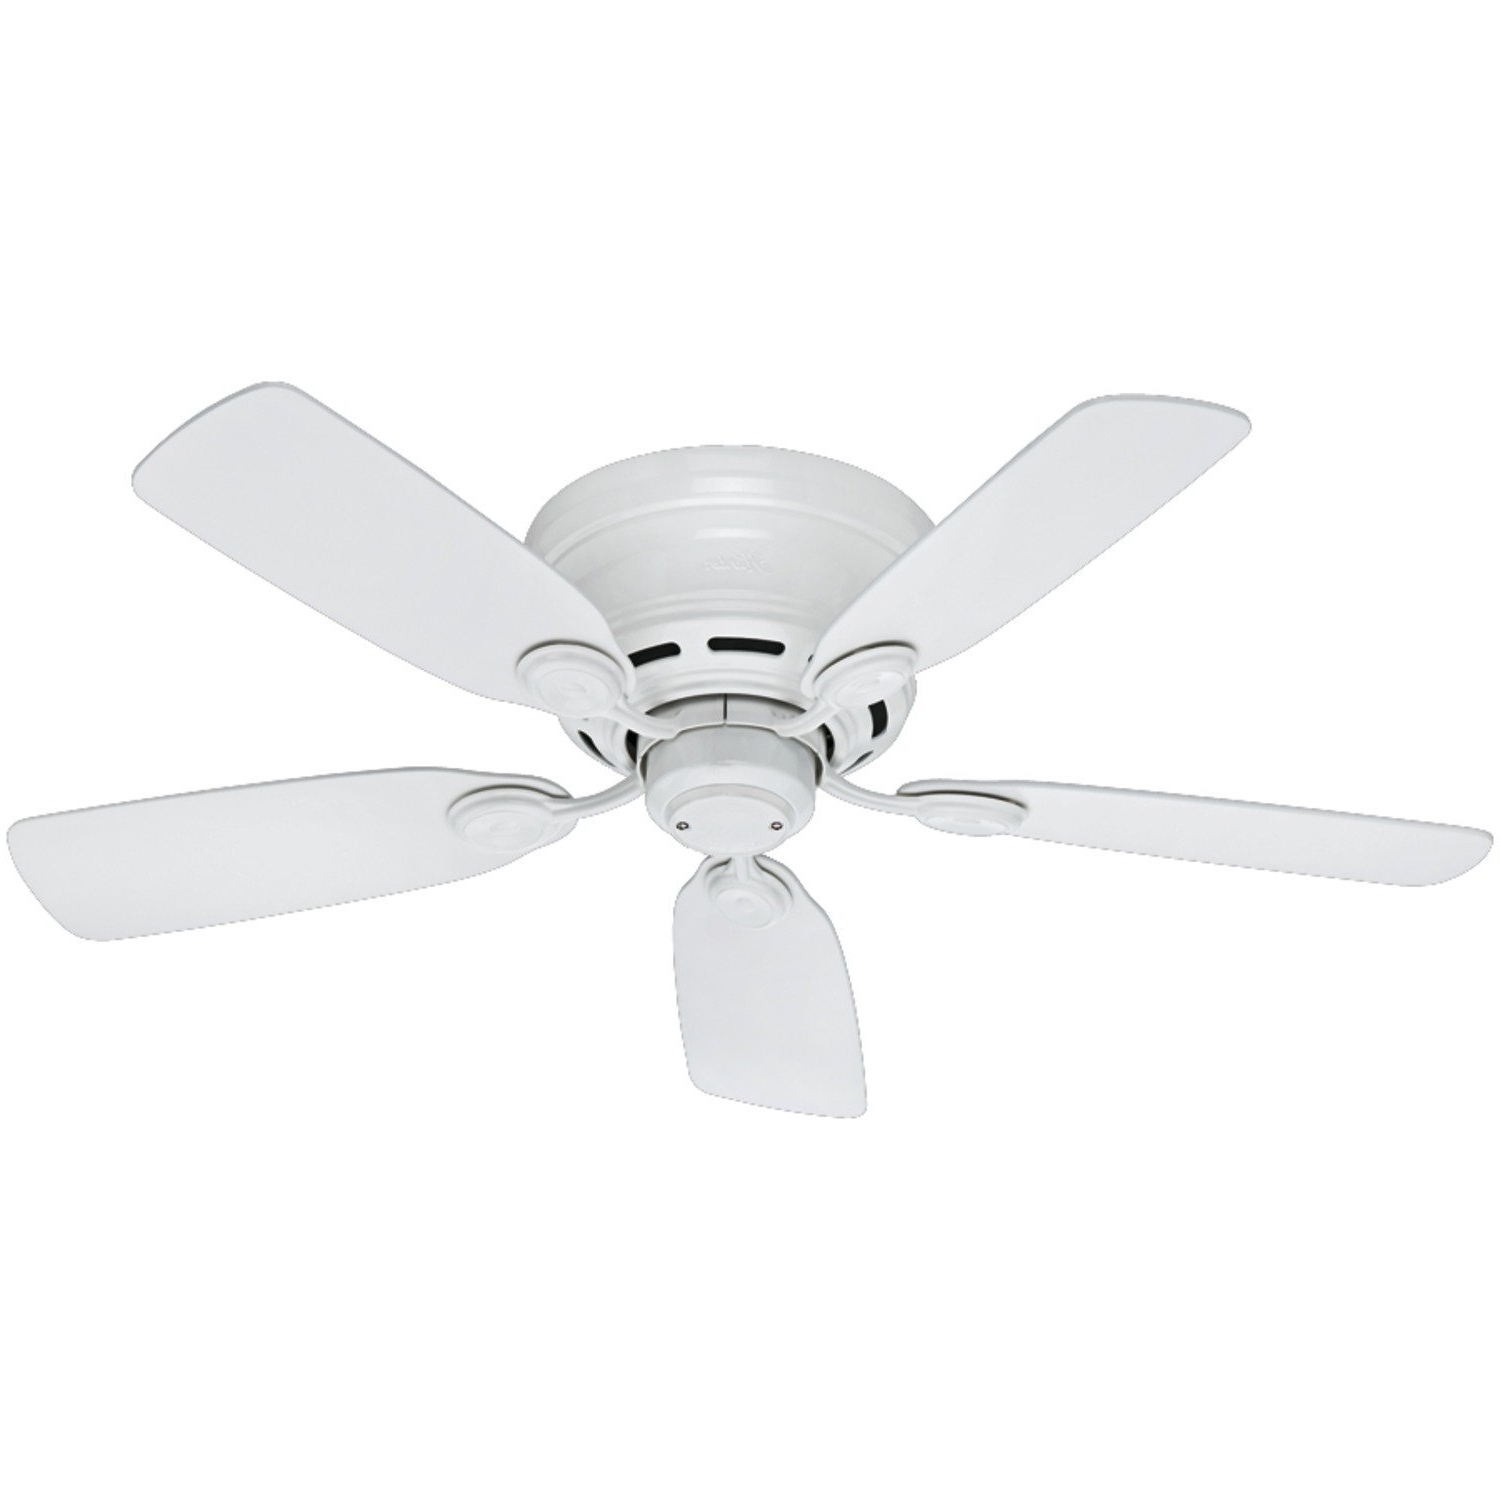 Flush Mount Ceiling Fans Review – Choose The Best Intended For Most Current 42 Inch Outdoor Ceiling Fans With Lights (View 12 of 20)